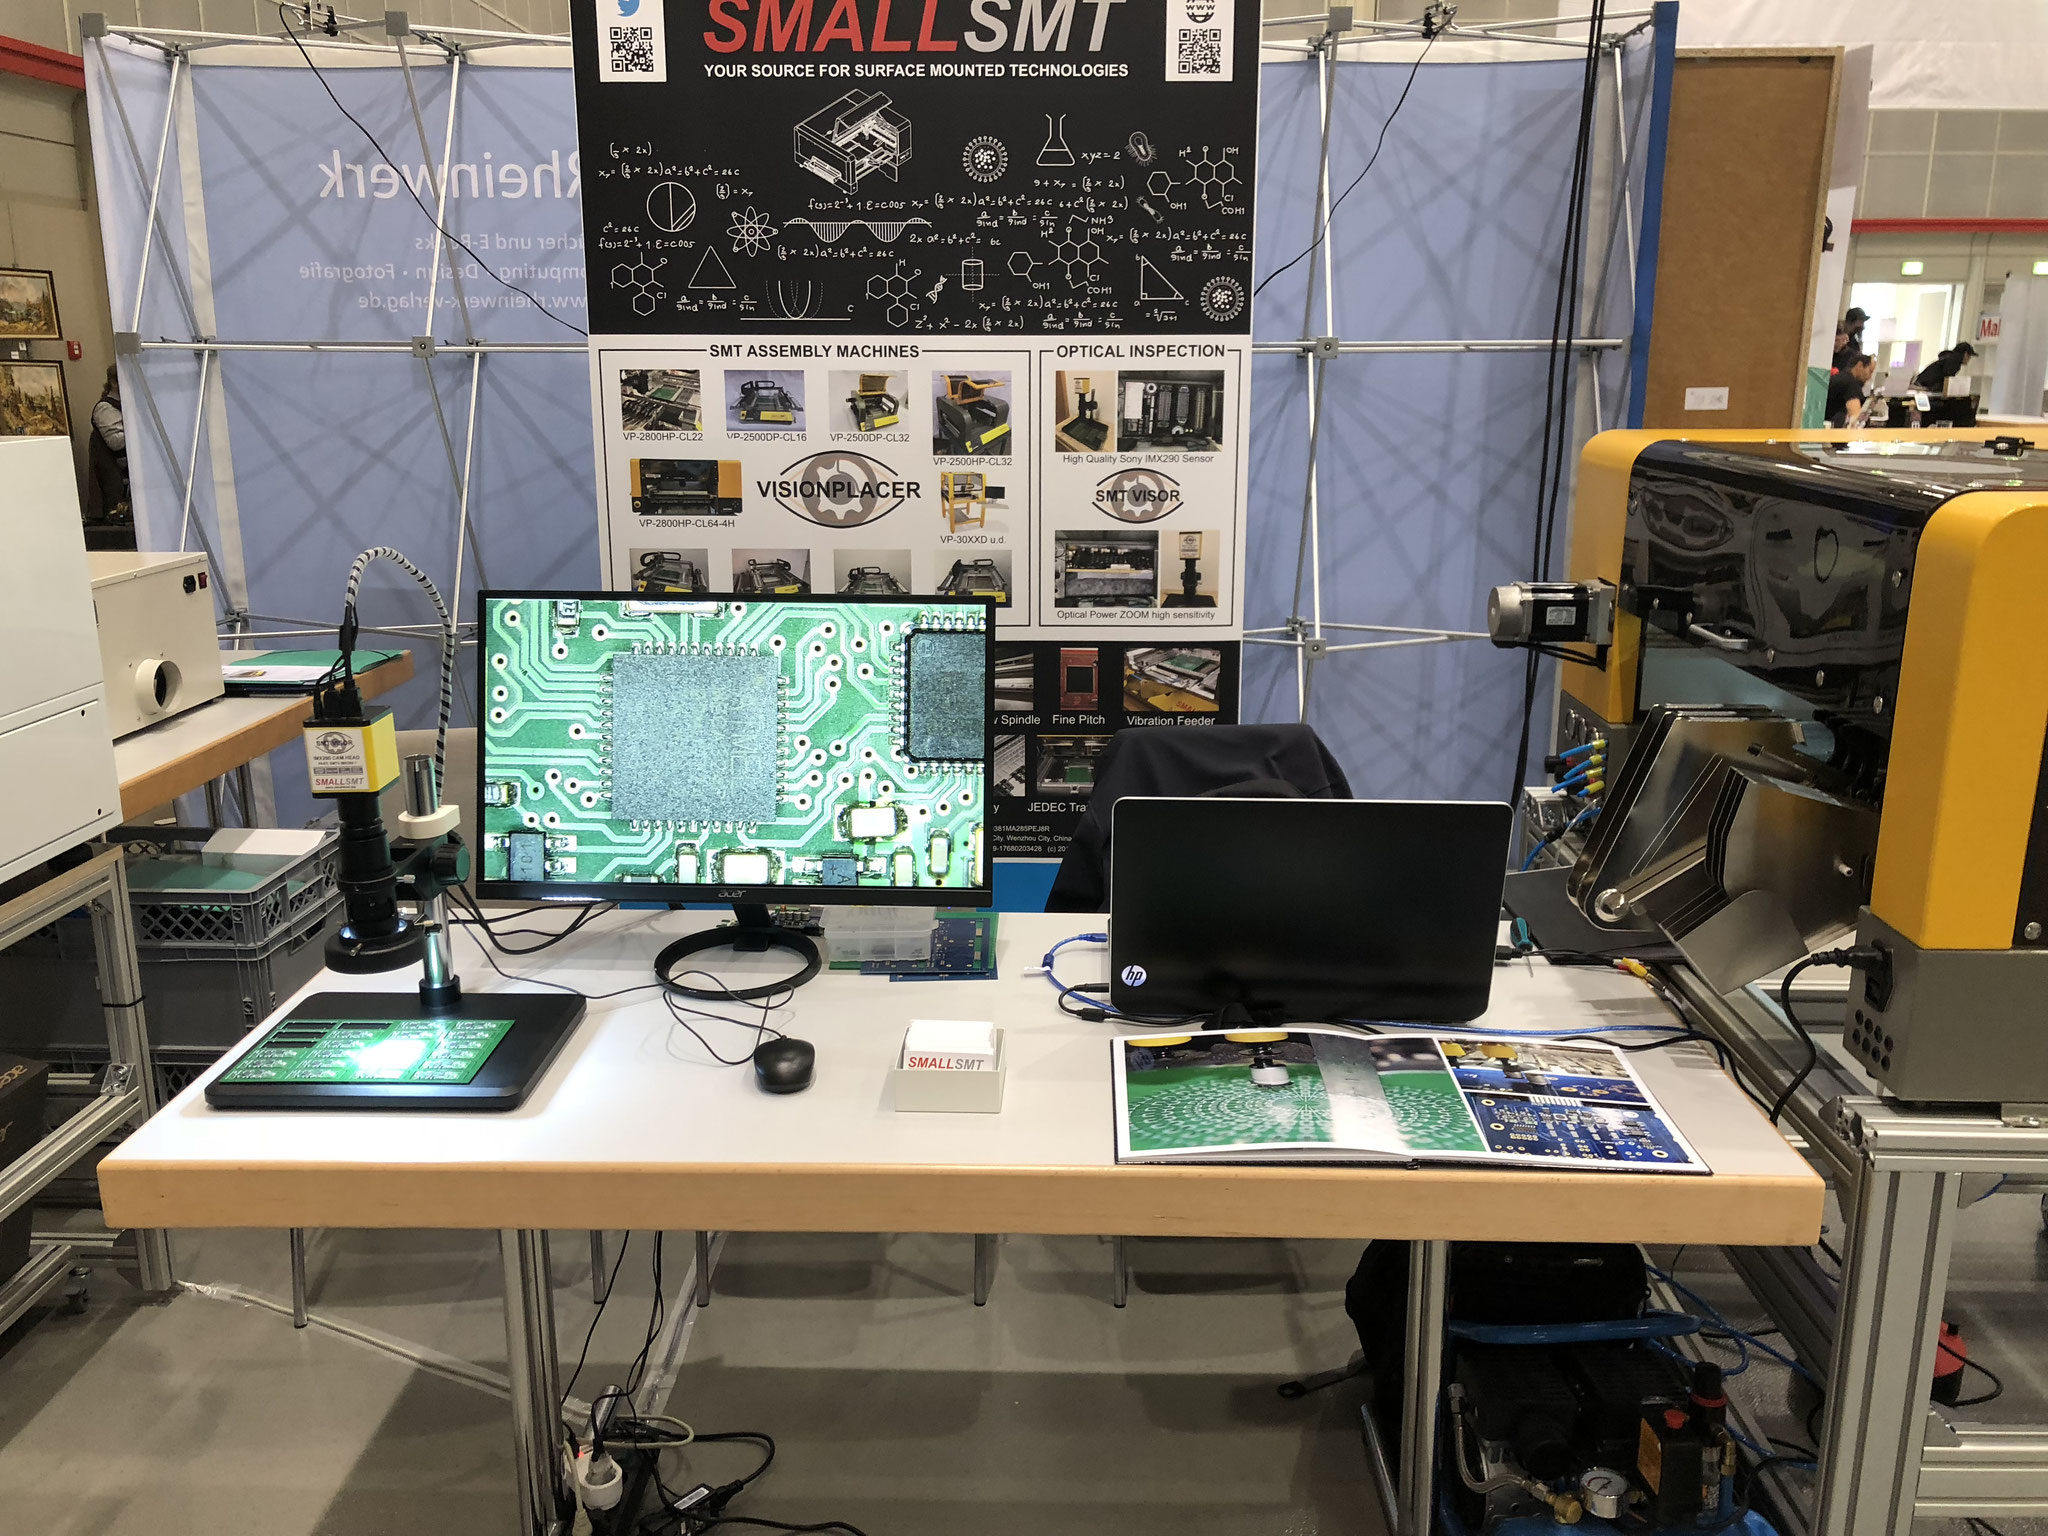 SMTV-IMX290-1 high image quality pcb inspection system using fast auto focus